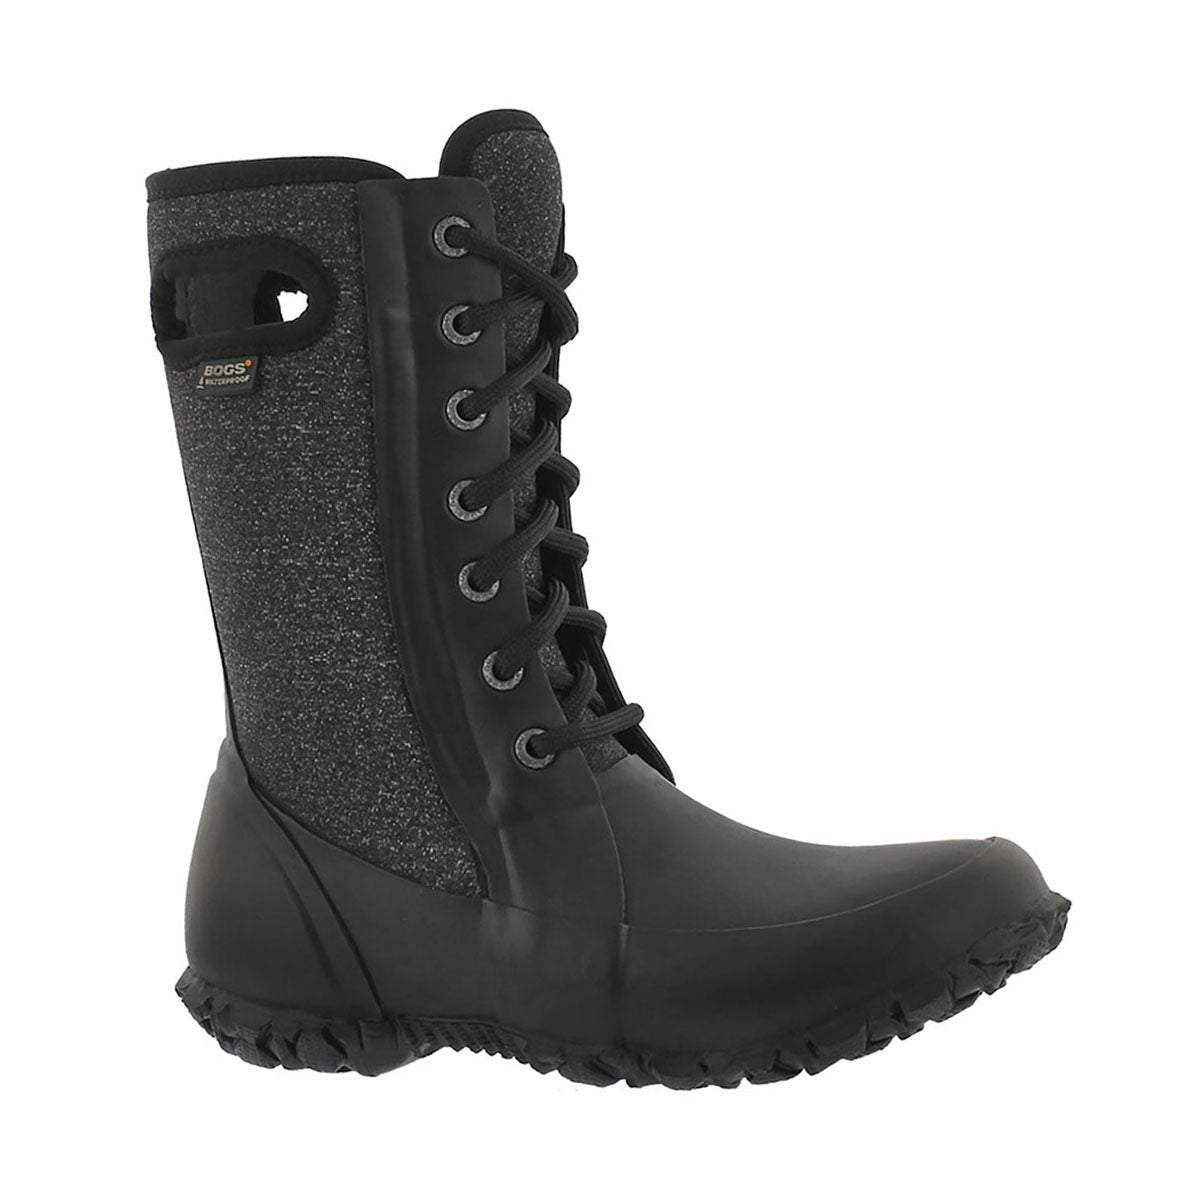 Girls' CAMI black waterproof lace up boots